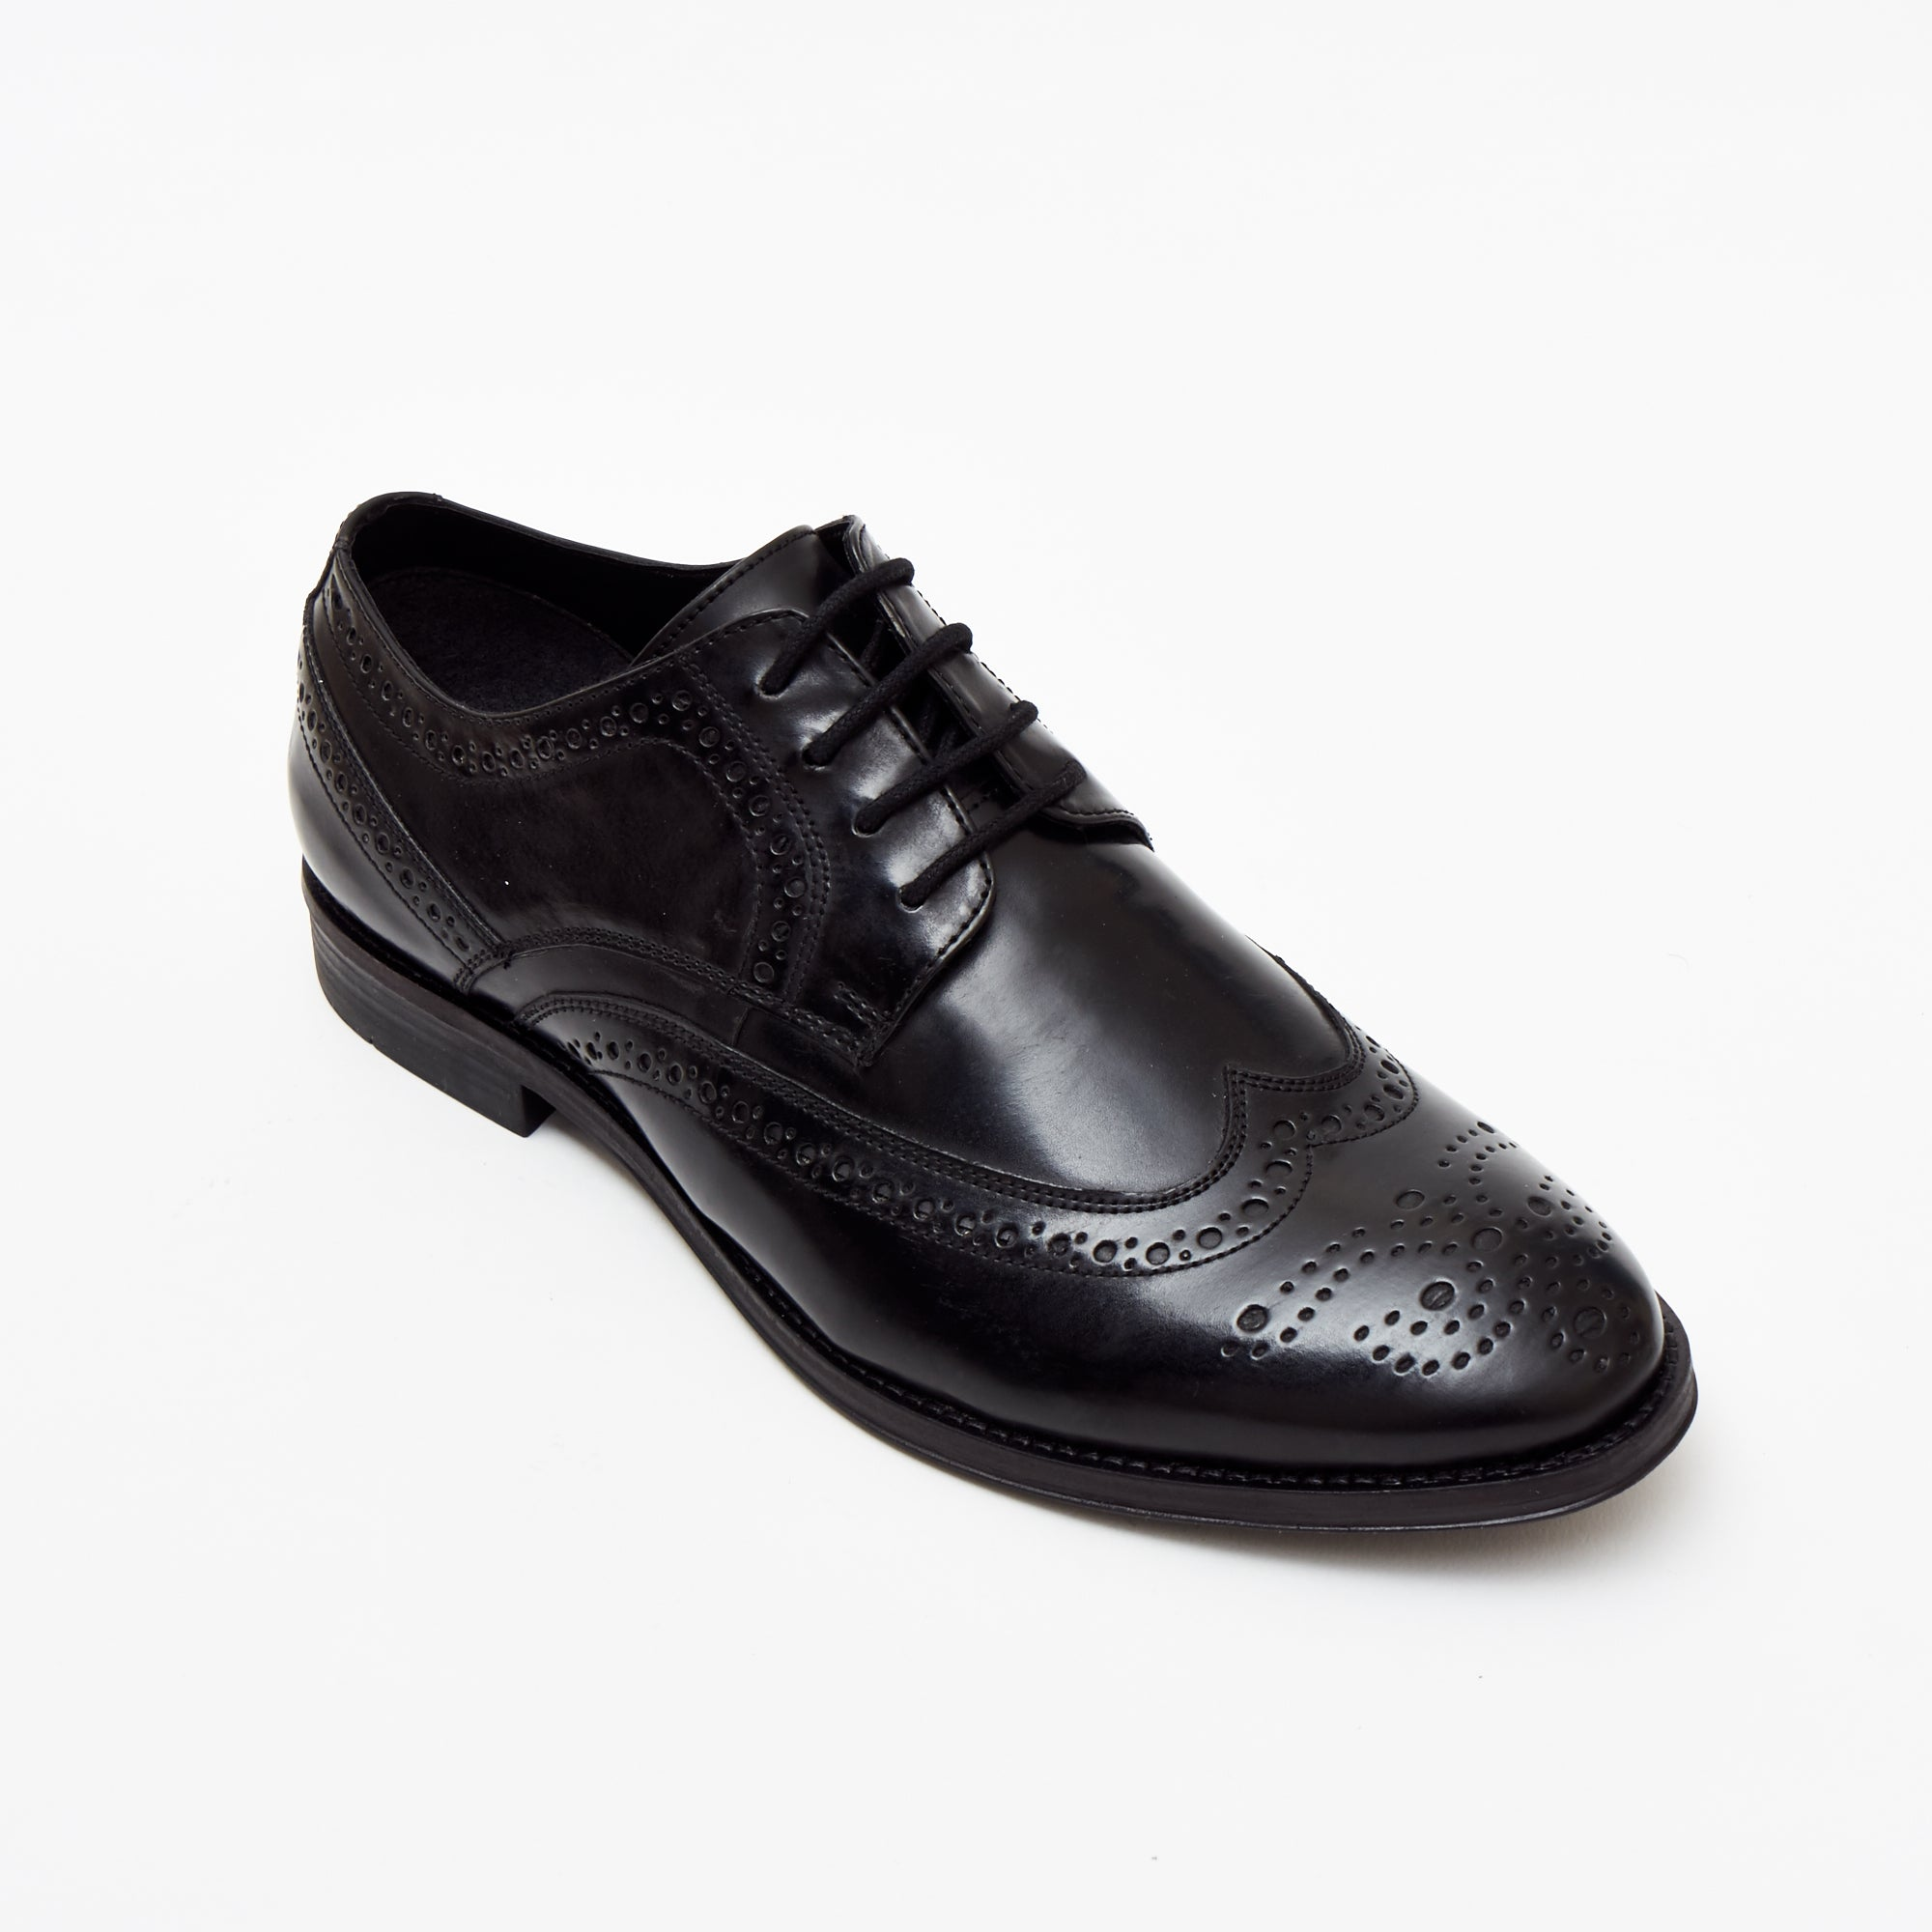 MEN'S FORMAL SHOES-7601_Black